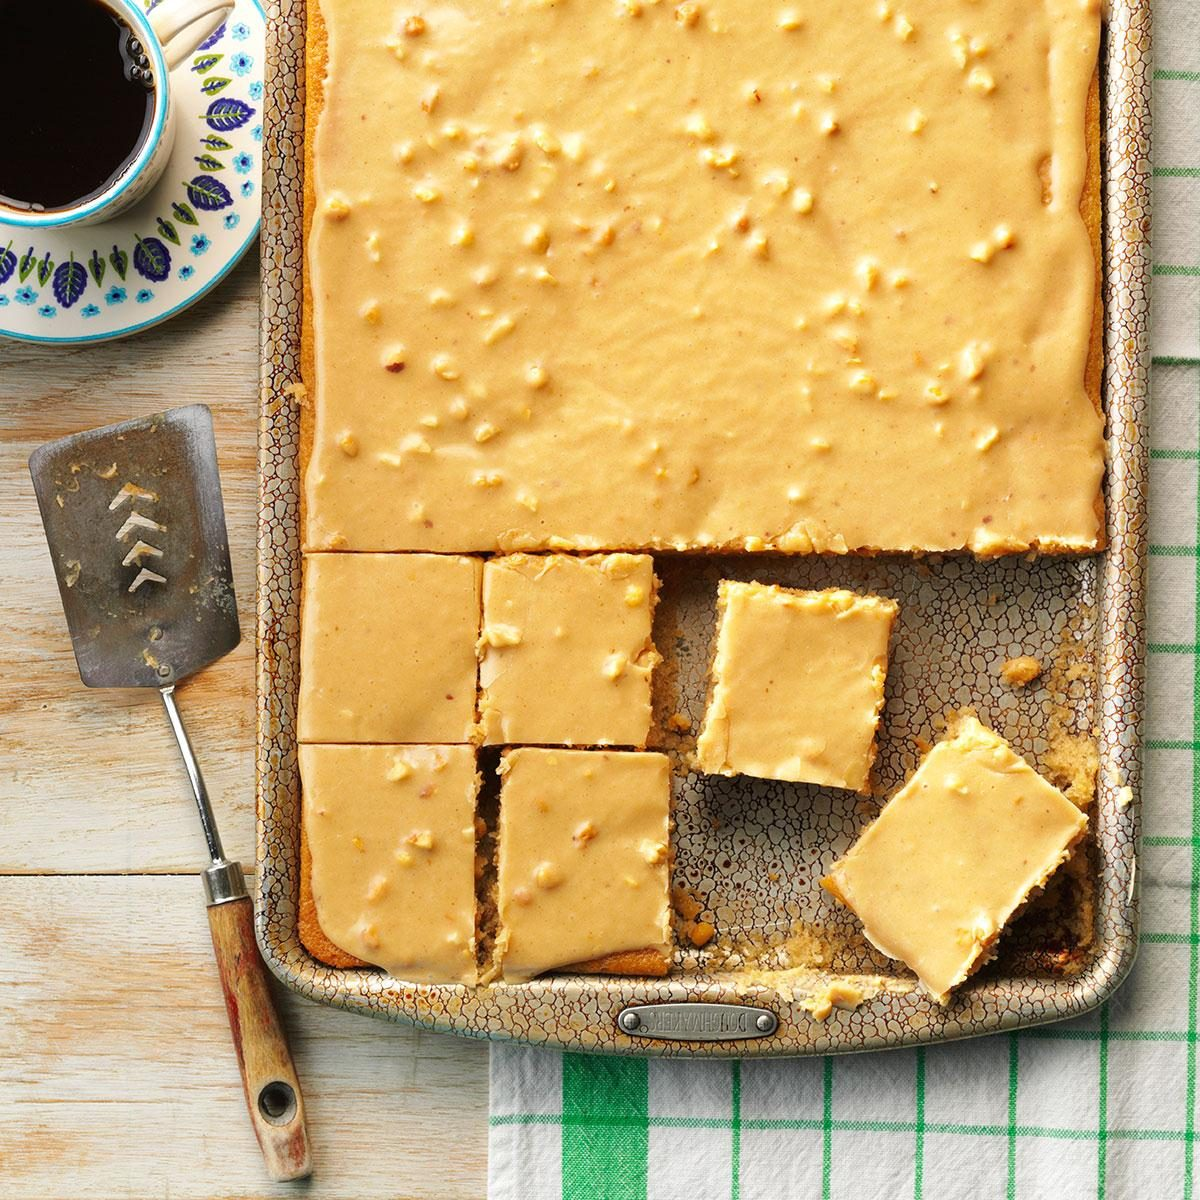 Easy Peanut Butter Sheet Cake